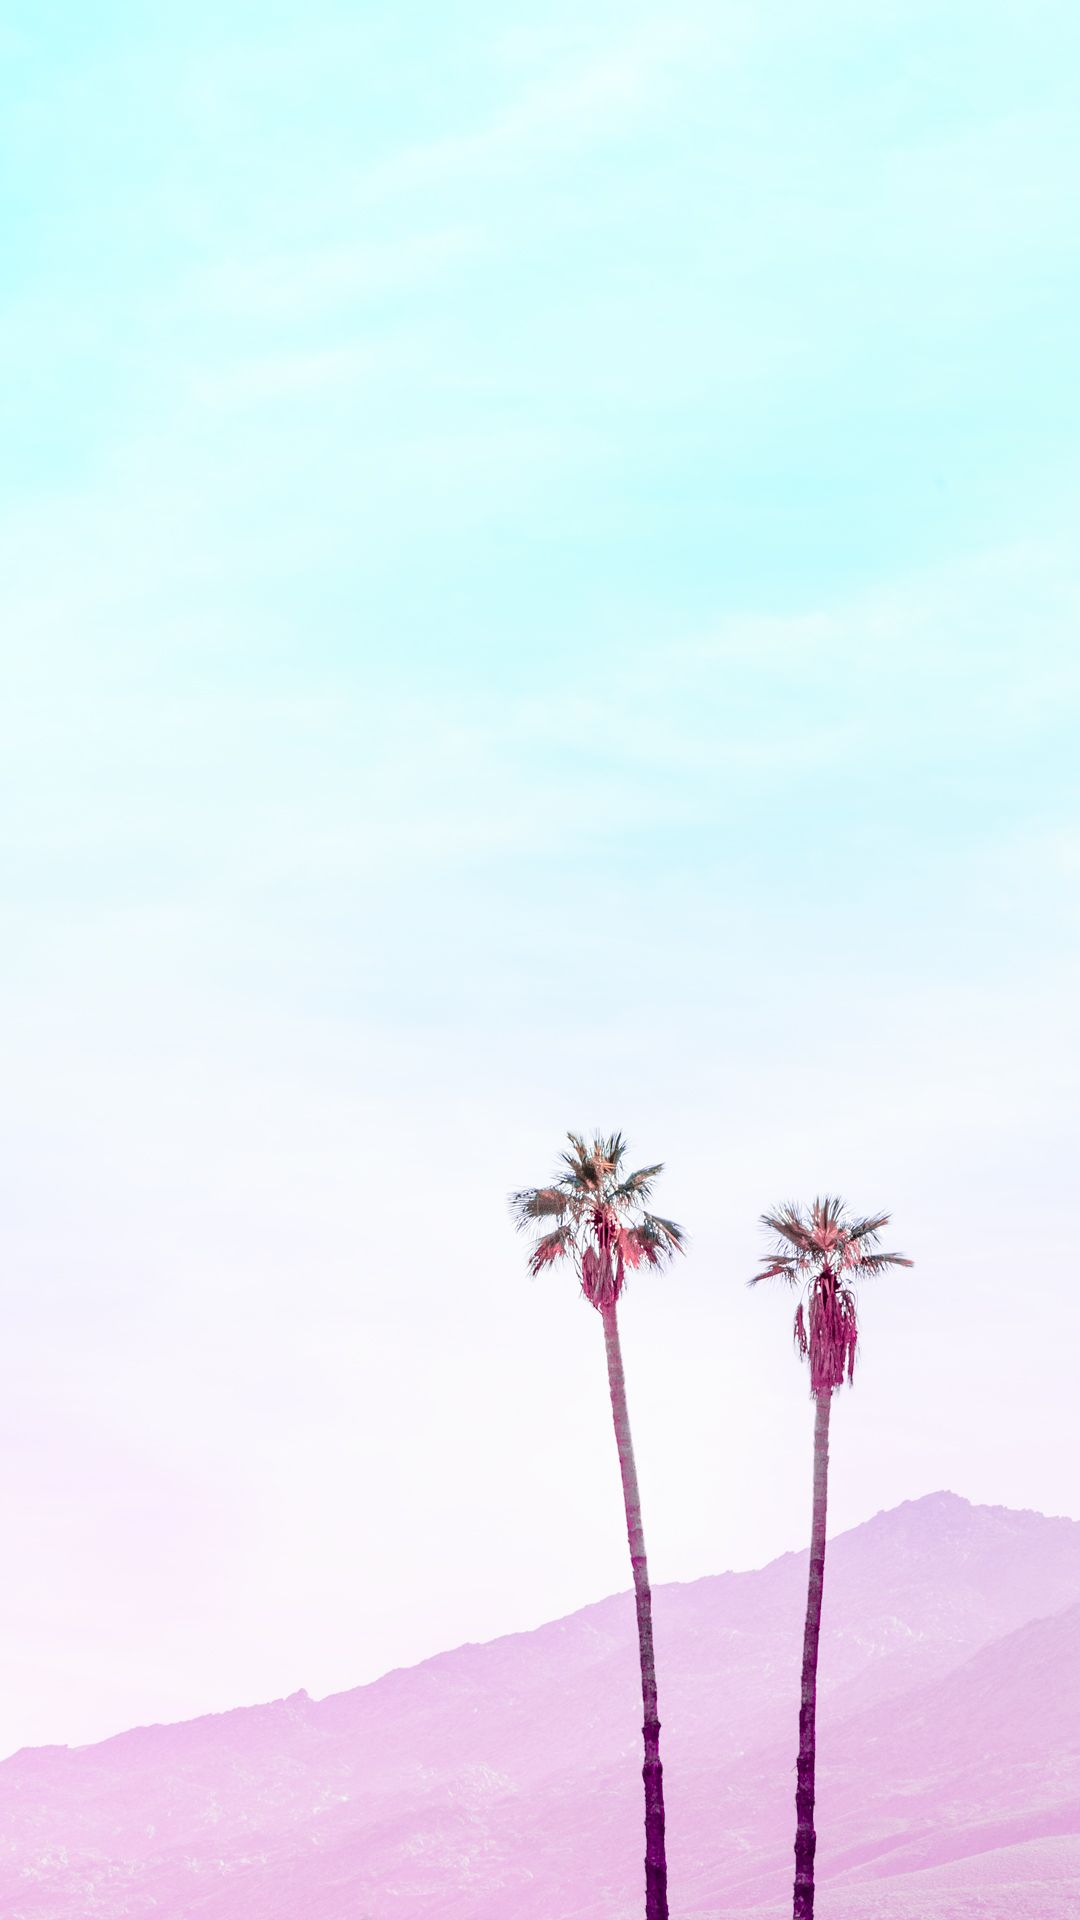 Minimalistic iPhone Pastel Wallpapers - Wallpaper Cave